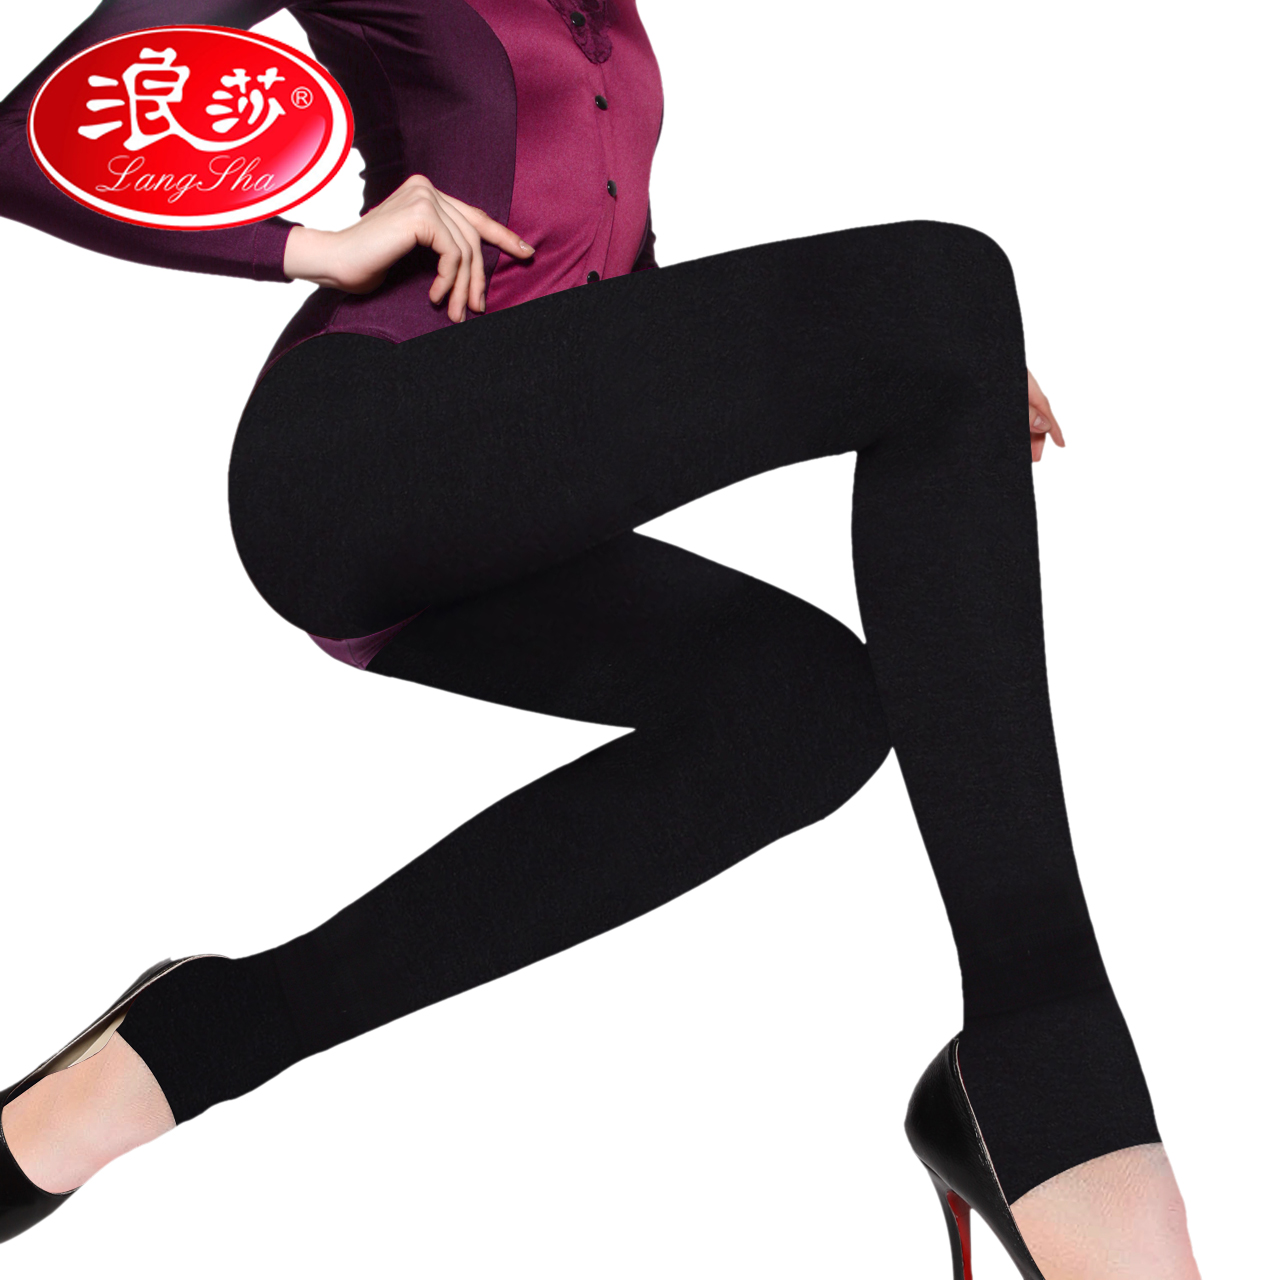 Pantalon collant jeunesse GB8968-14 en polyester, polyester,  - Ref 773813 Image 1